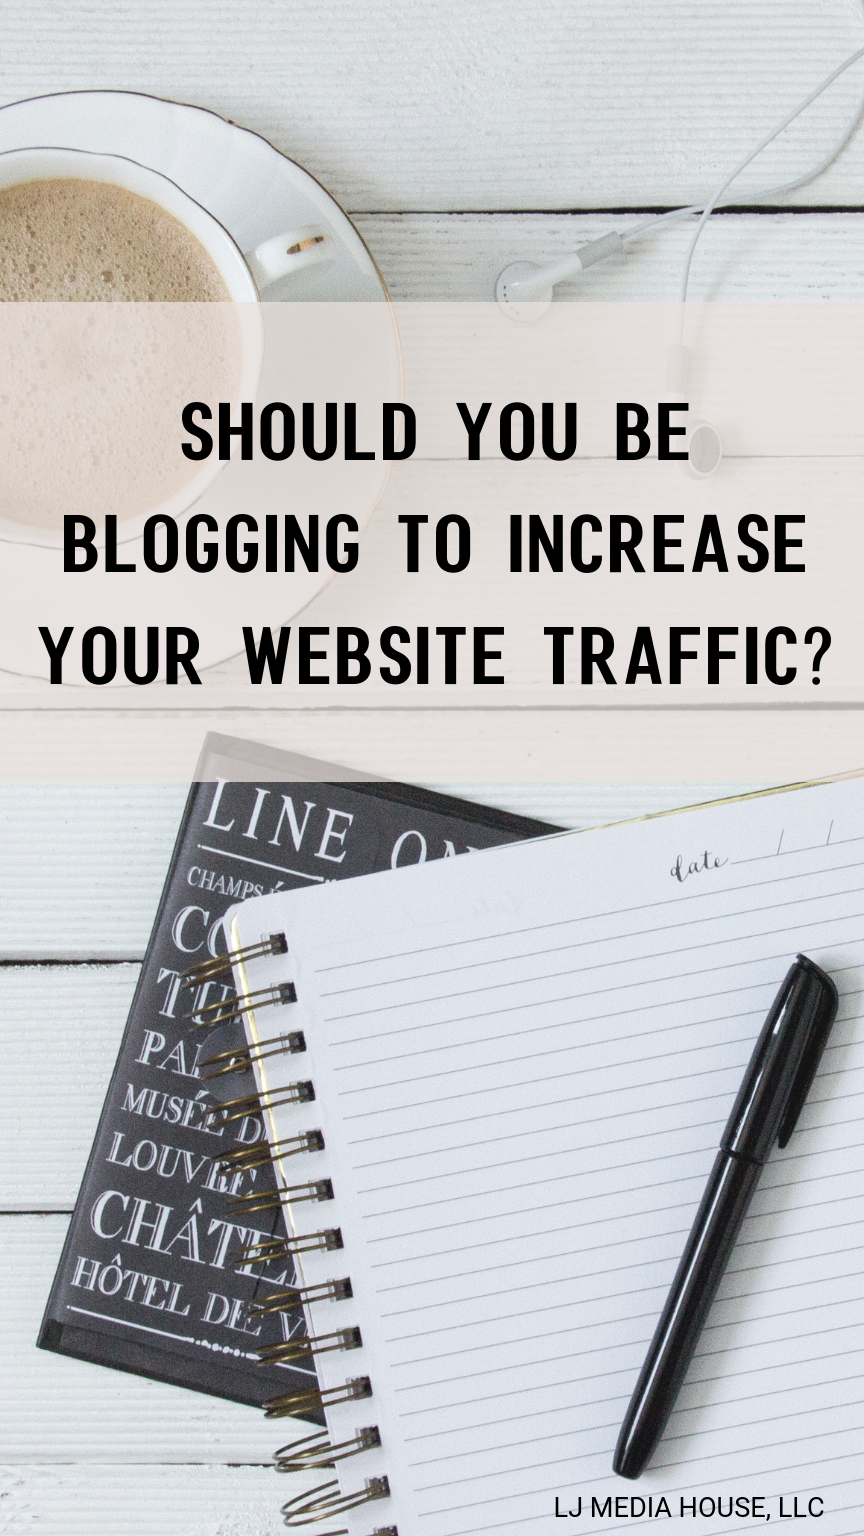 Should you have a blog to increase website traffic?